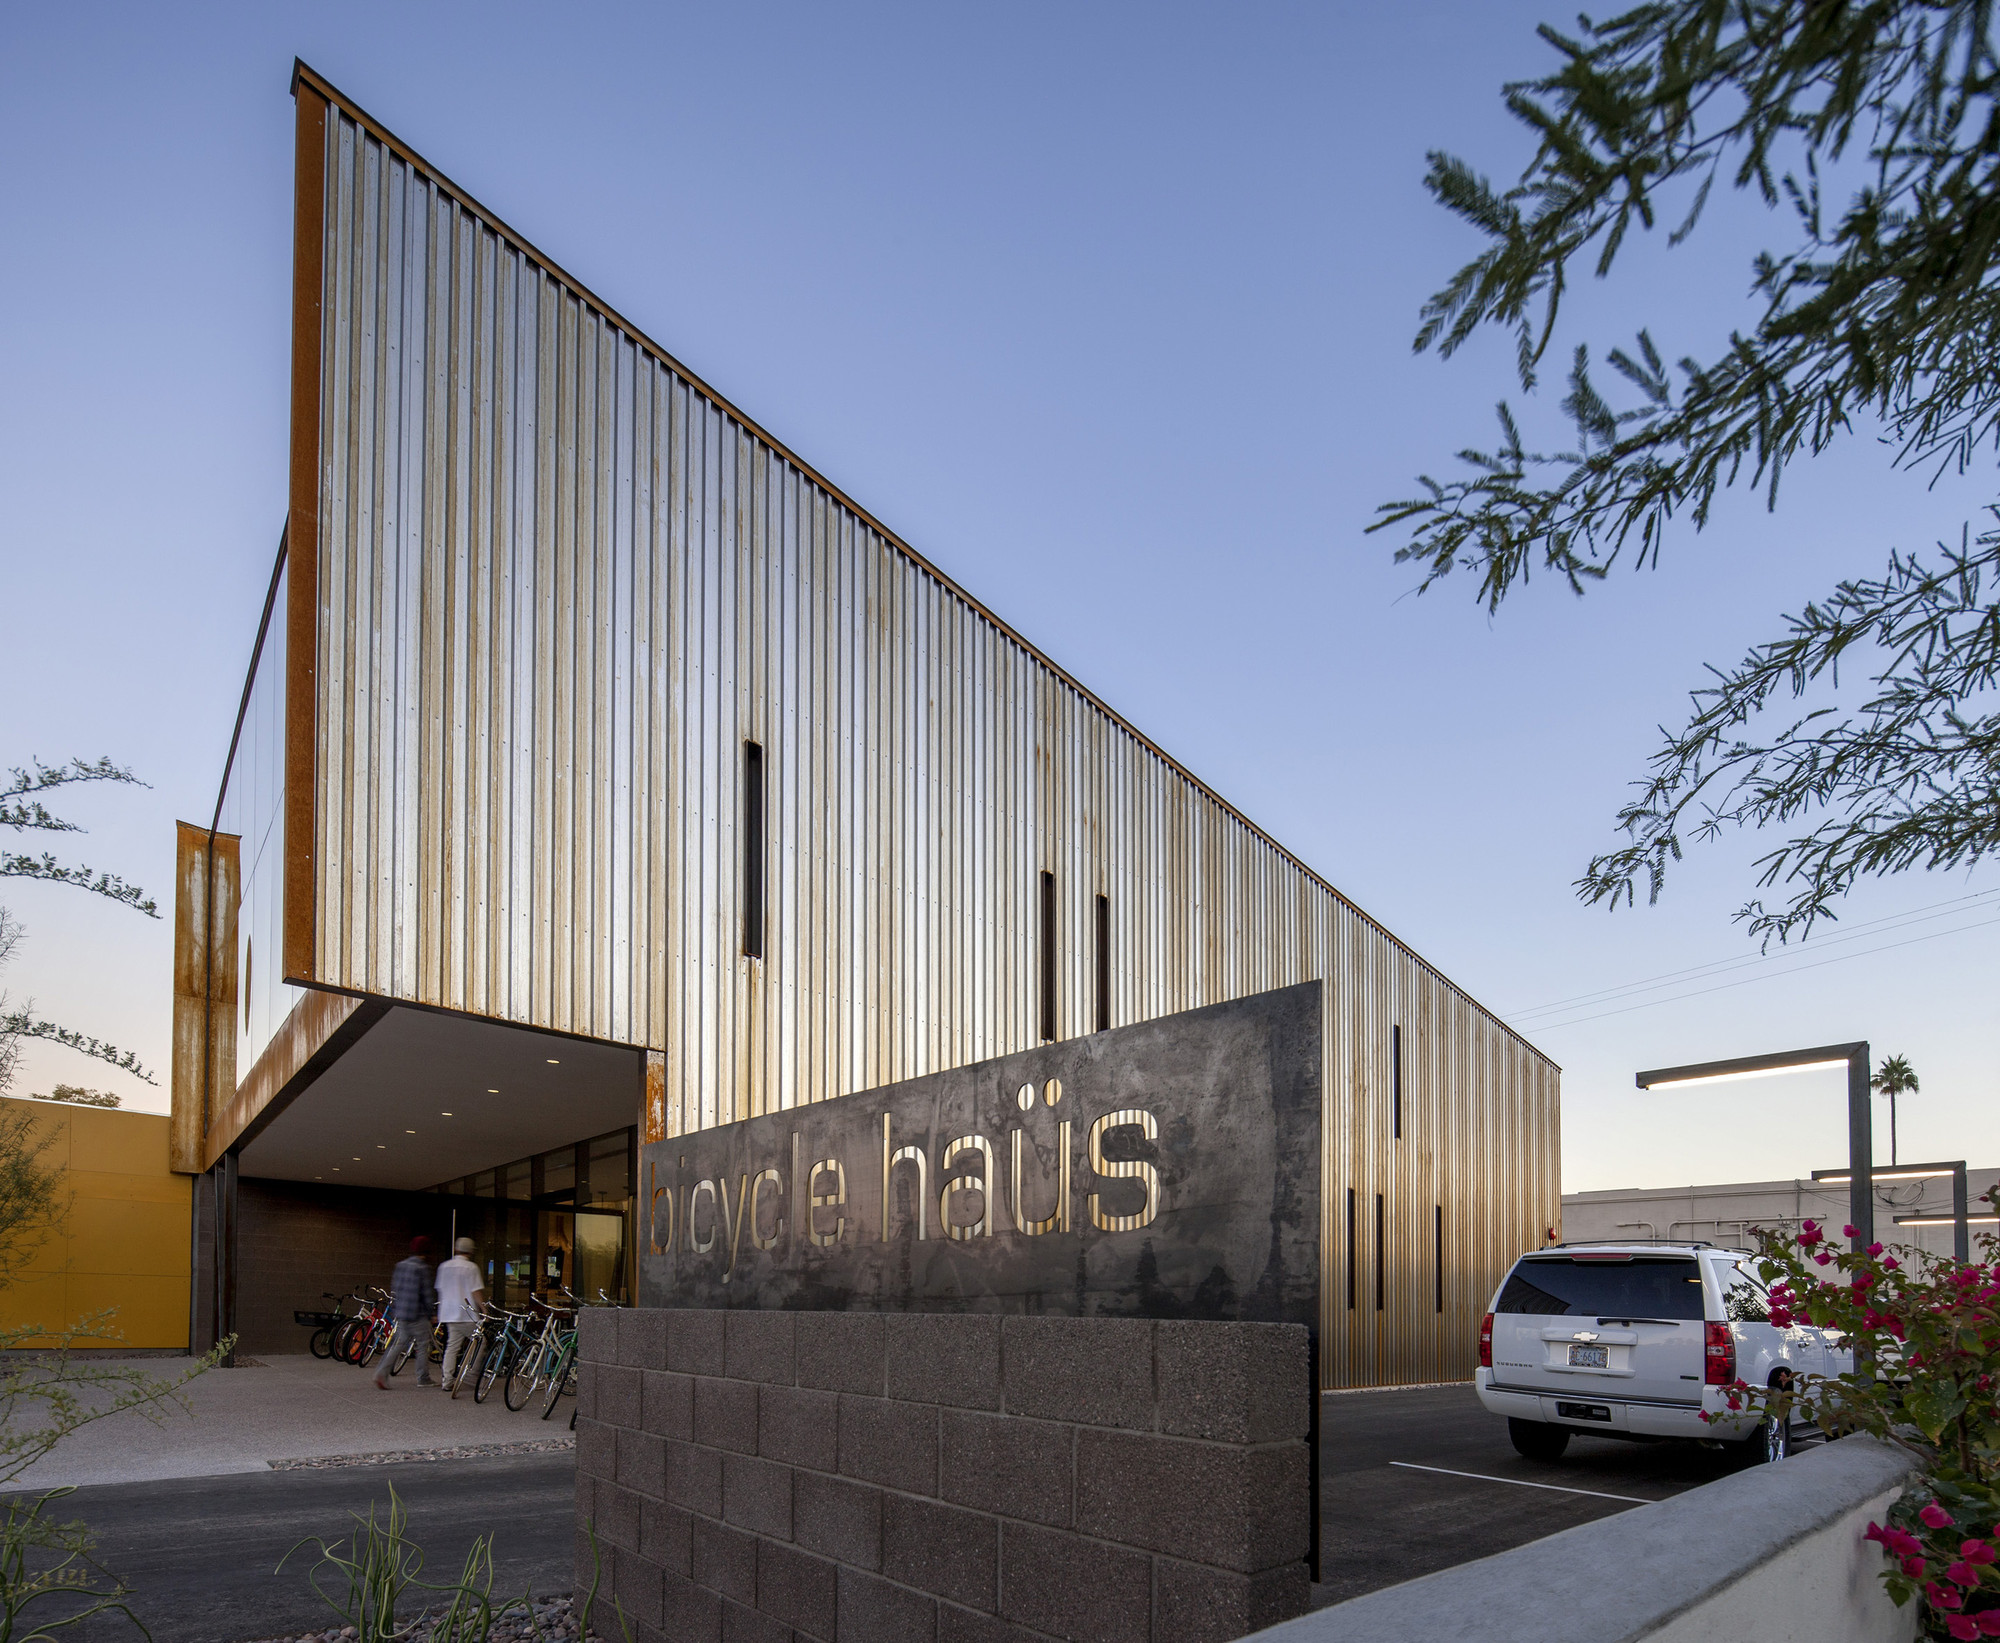 Bicycle ha s debartolo architects archdaily for Building a house in arizona